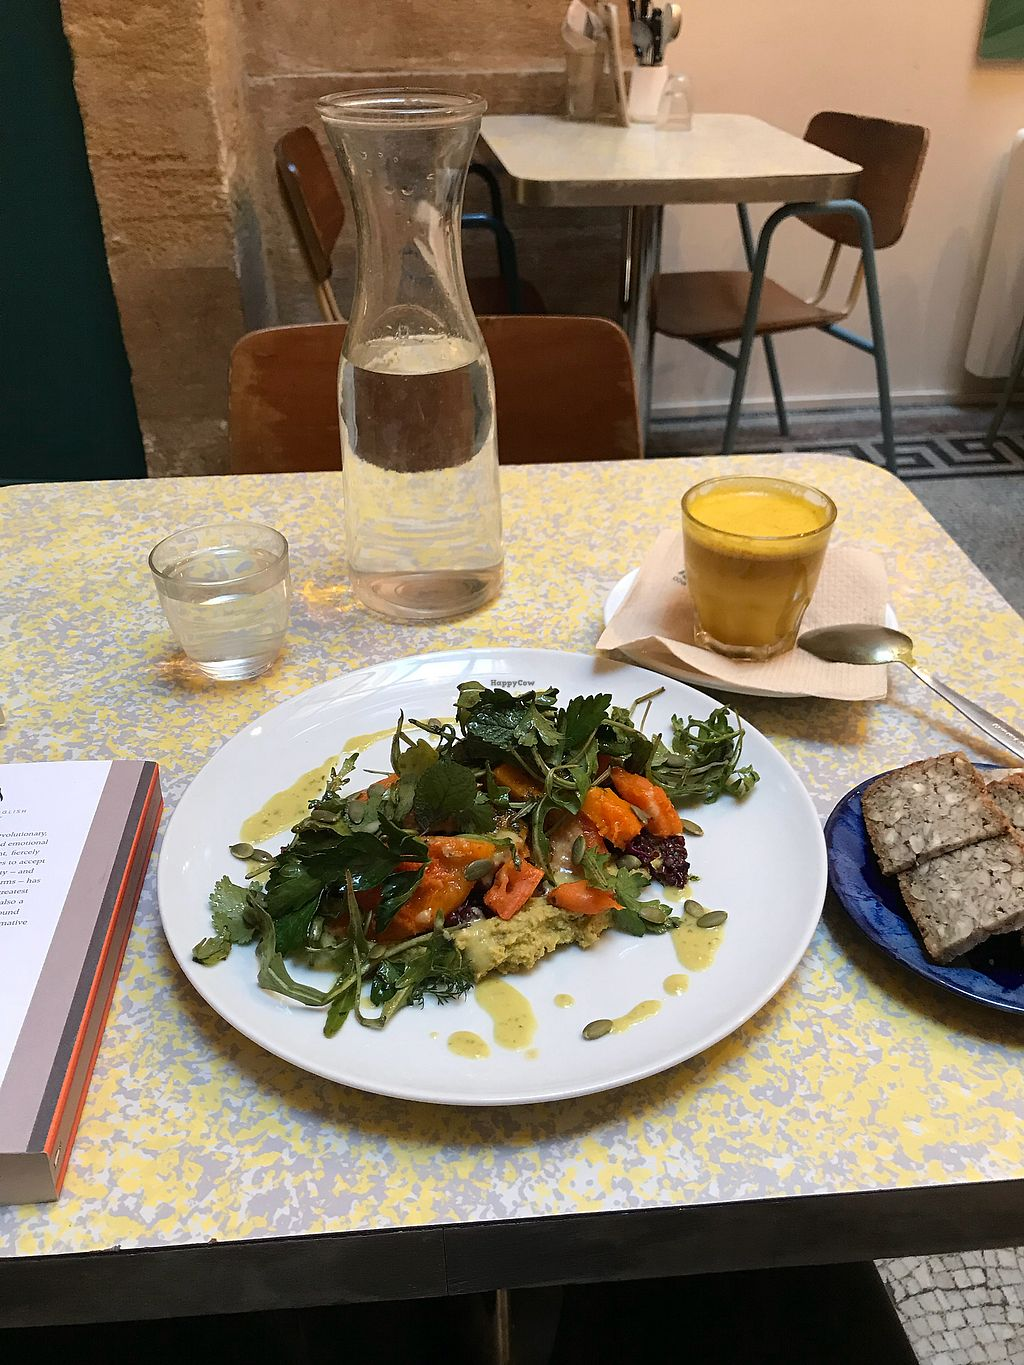 """Photo of Banana Cafe  by <a href=""""/members/profile/ChiaraEndrulat"""">ChiaraEndrulat</a> <br/>Tumeric Latte and vegan lunch option  <br/> February 4, 2018  - <a href='/contact/abuse/image/92340/355042'>Report</a>"""